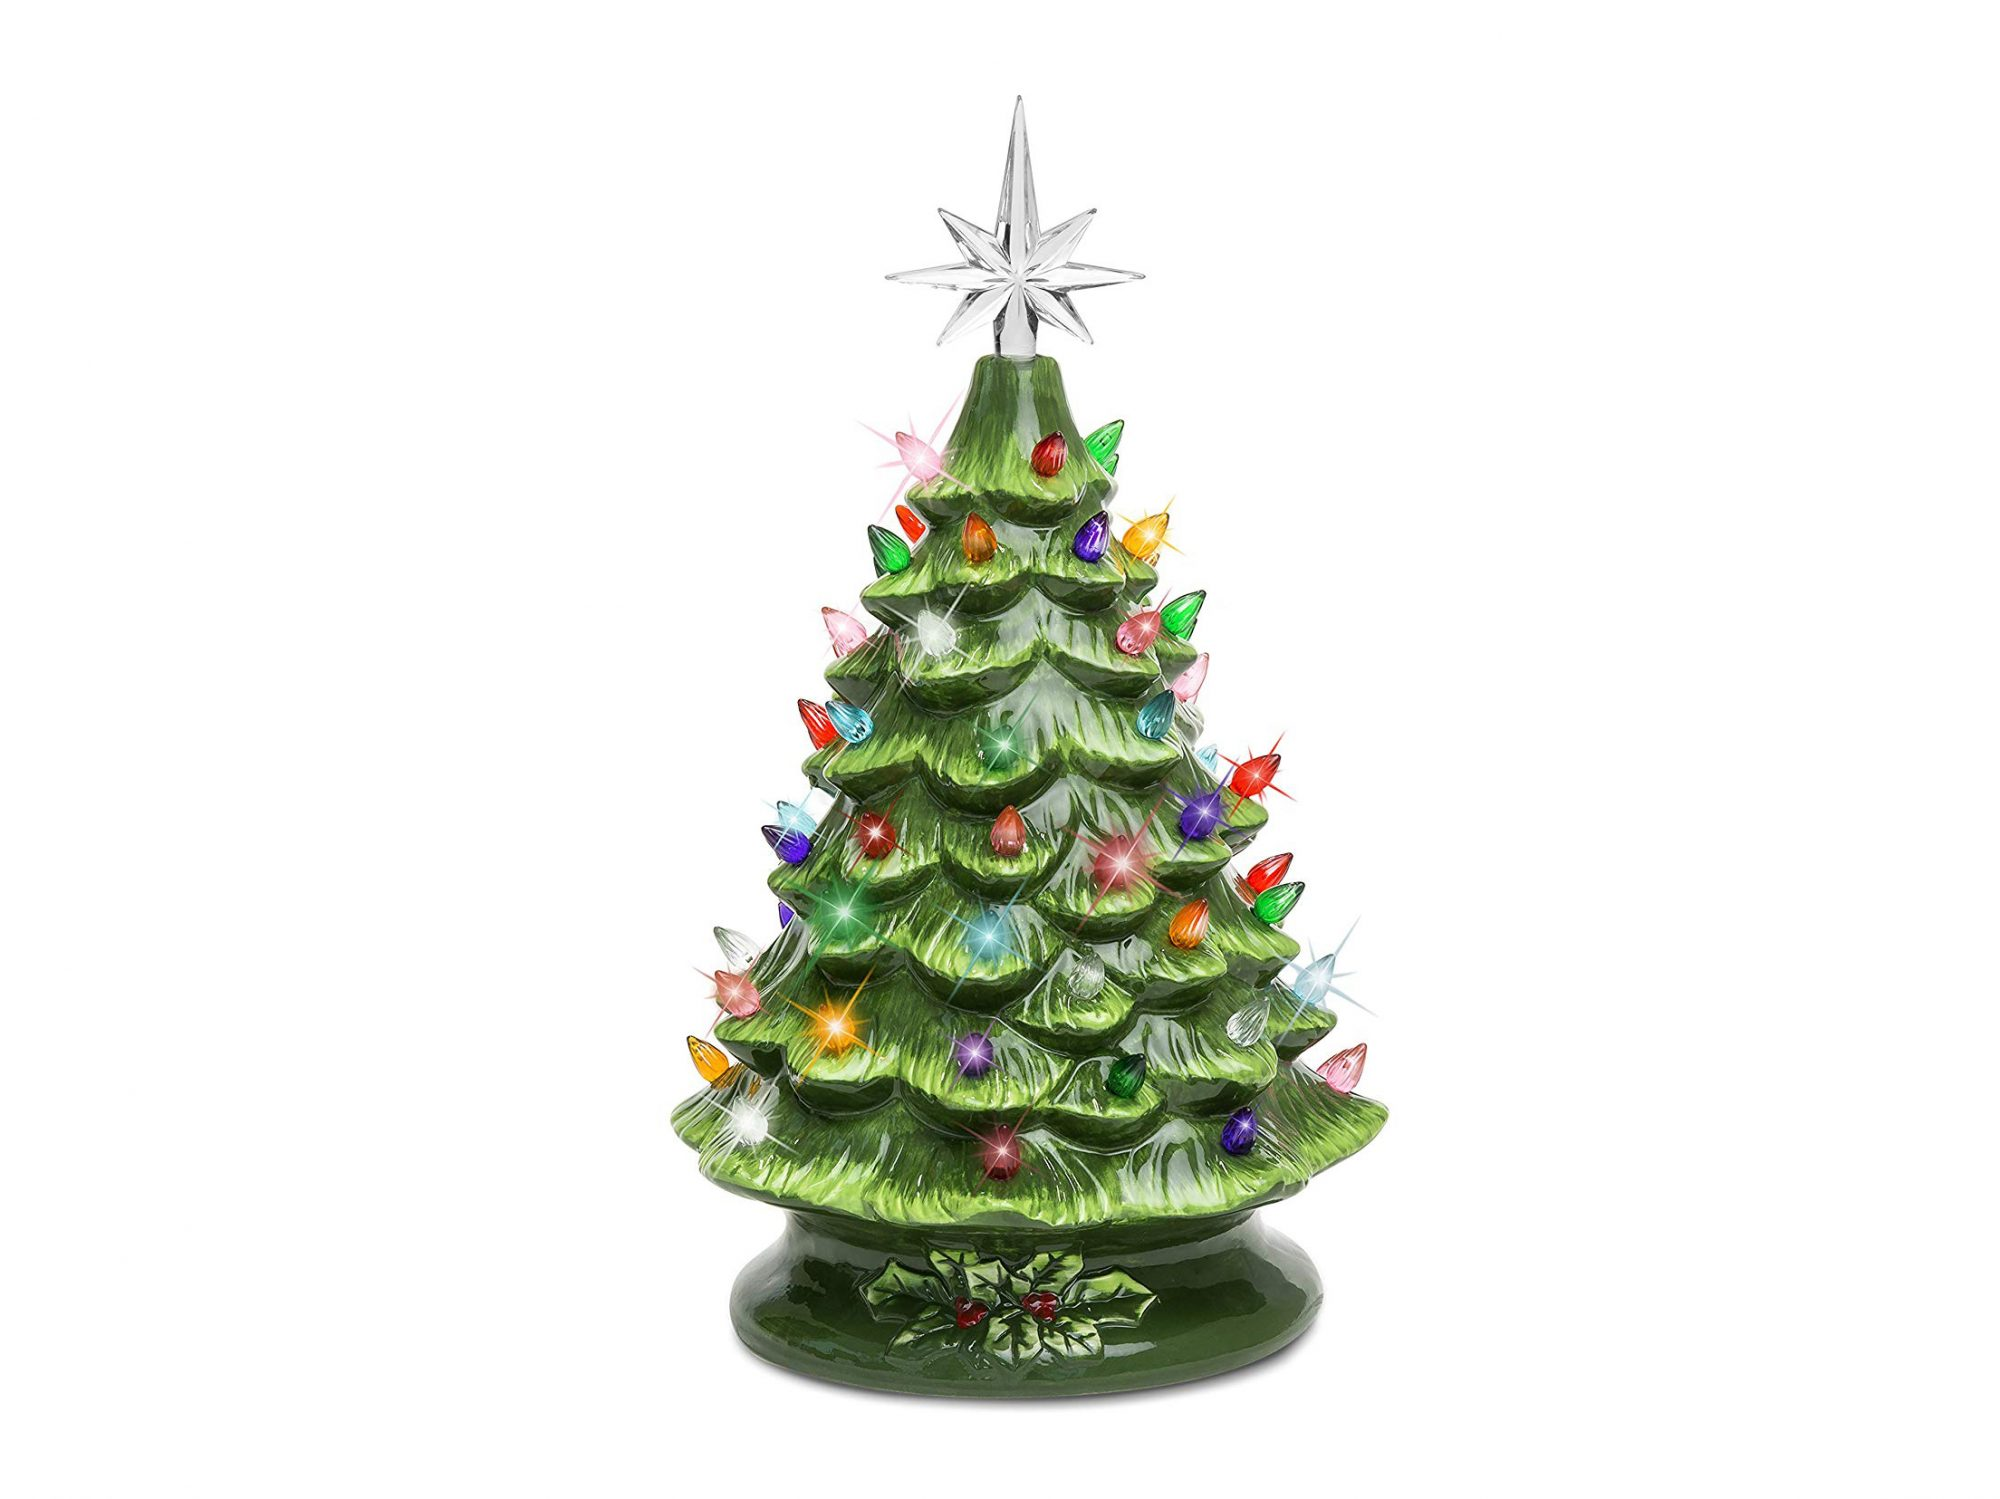 Best Choice Products 15in Ceramic Pre-Lit Christmas Tree